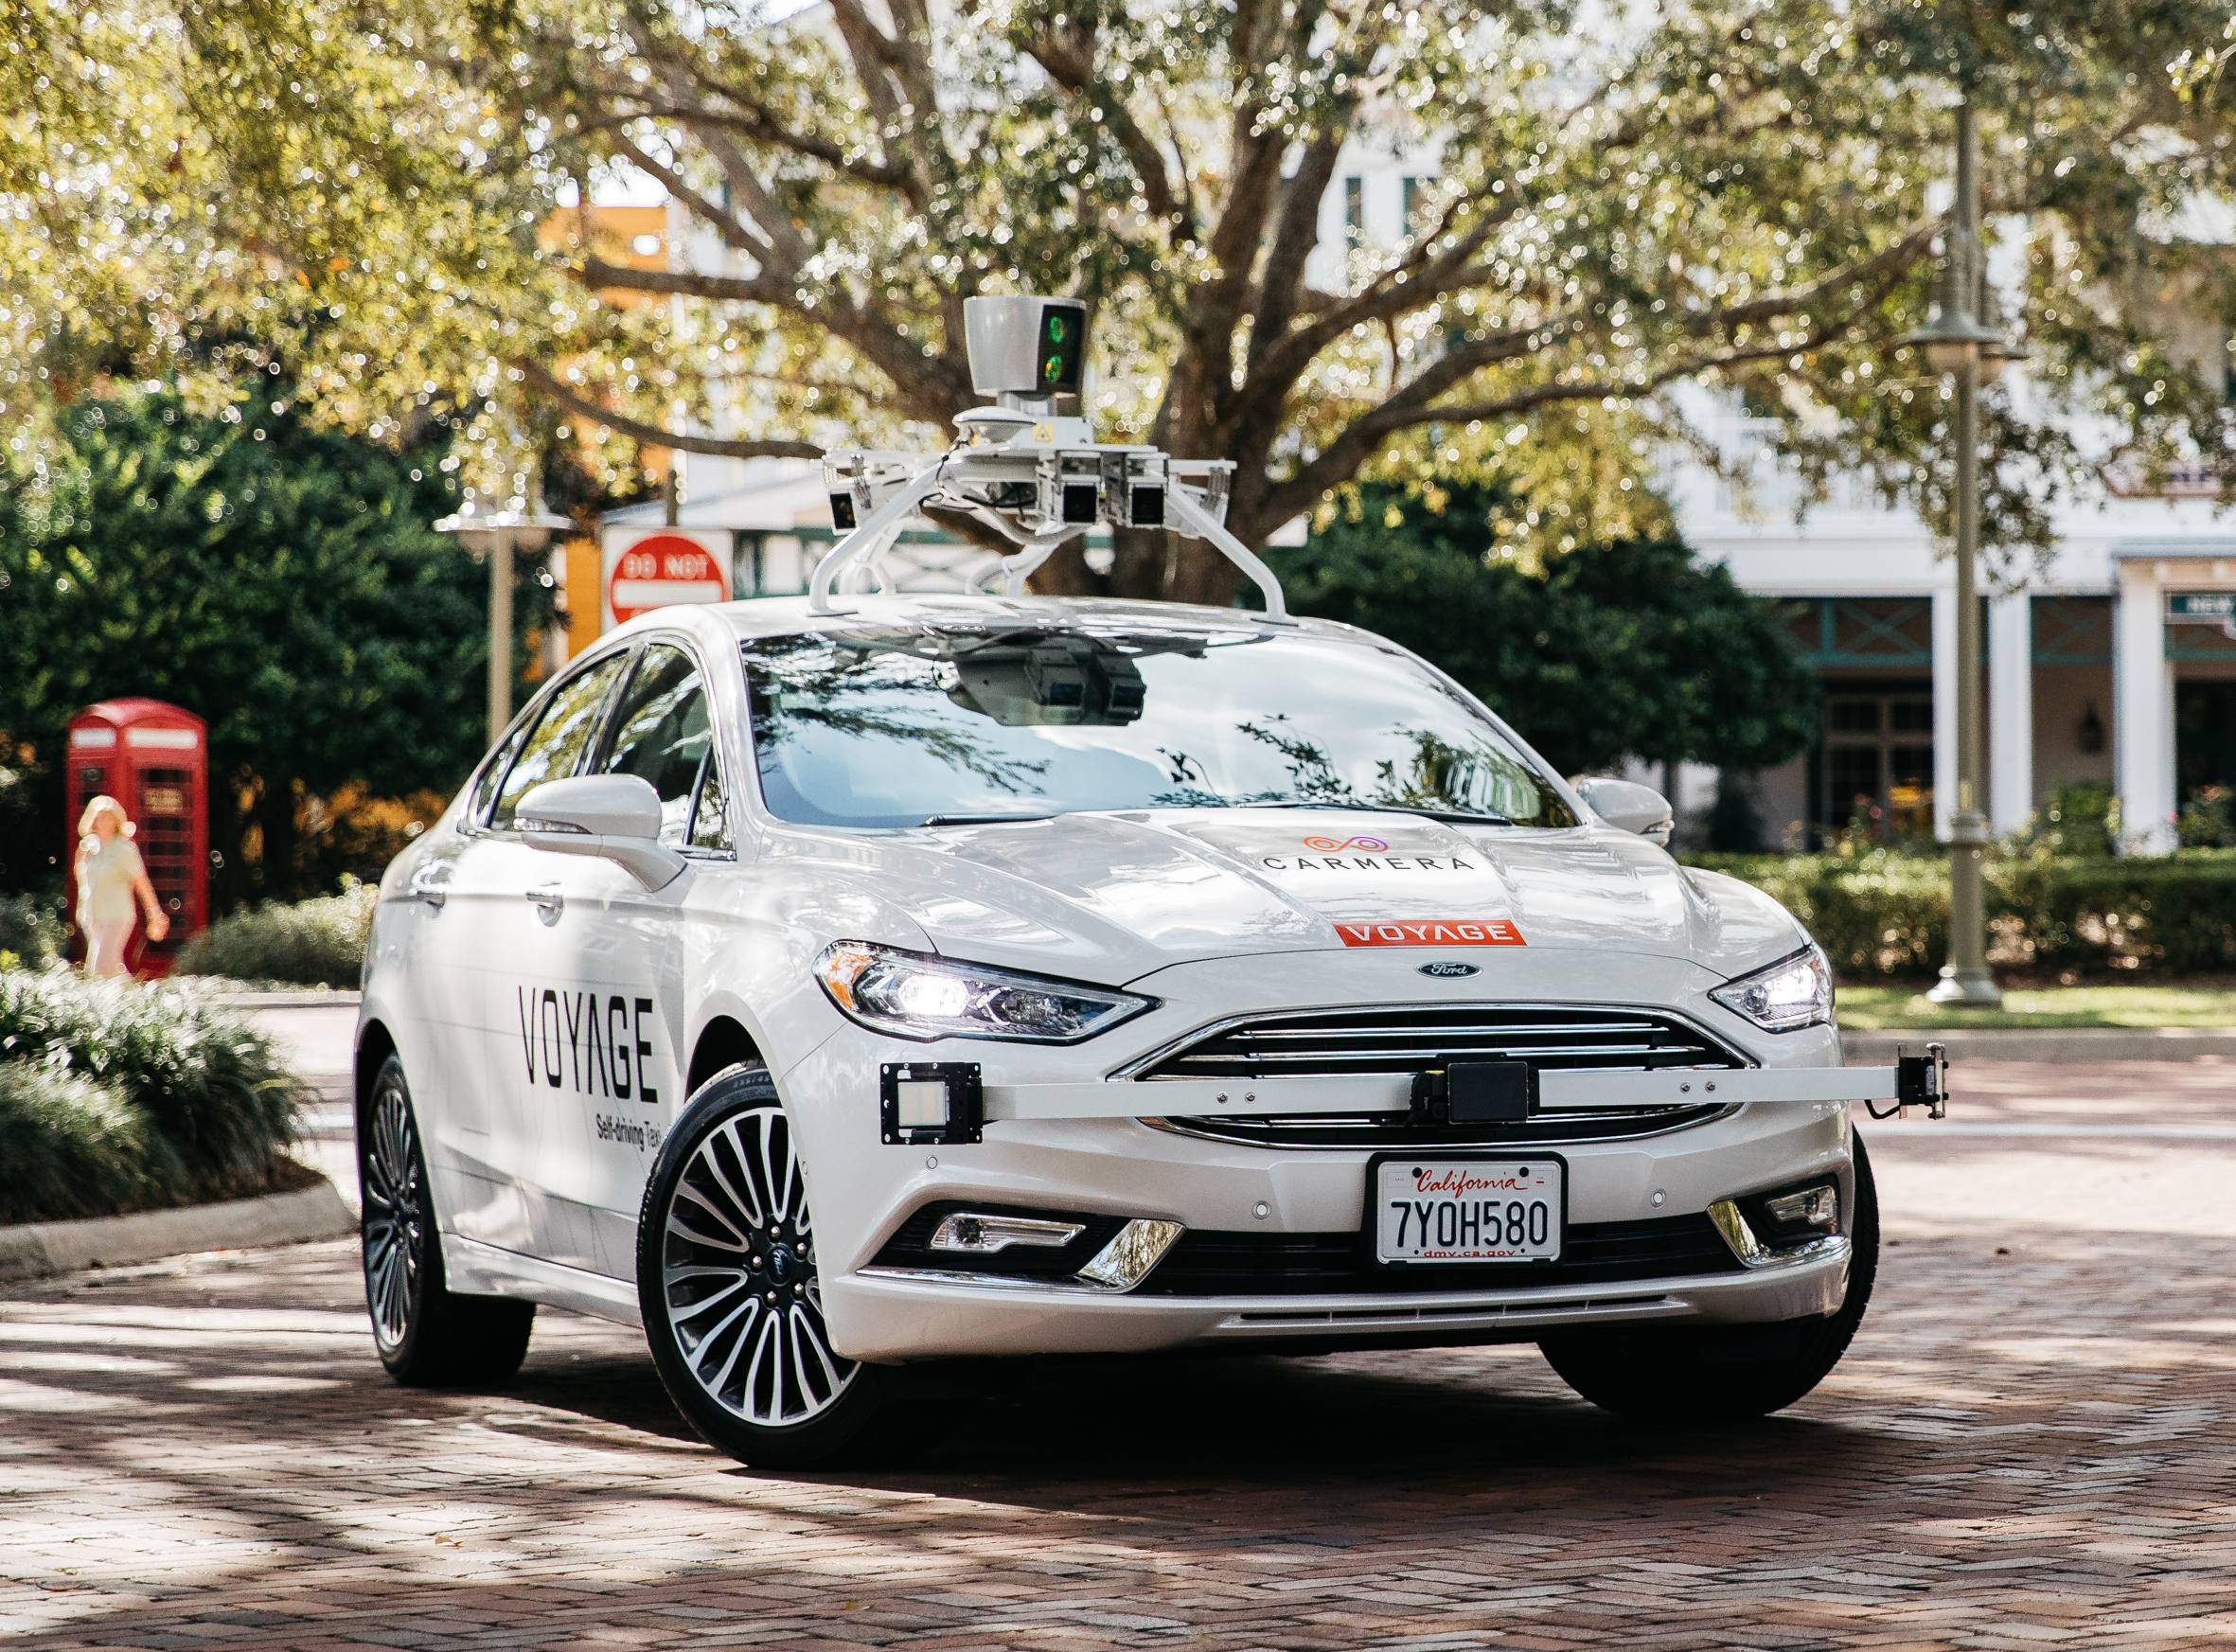 Our Next Voyage: Mapping 750 Miles to Power Autonomous Taxis